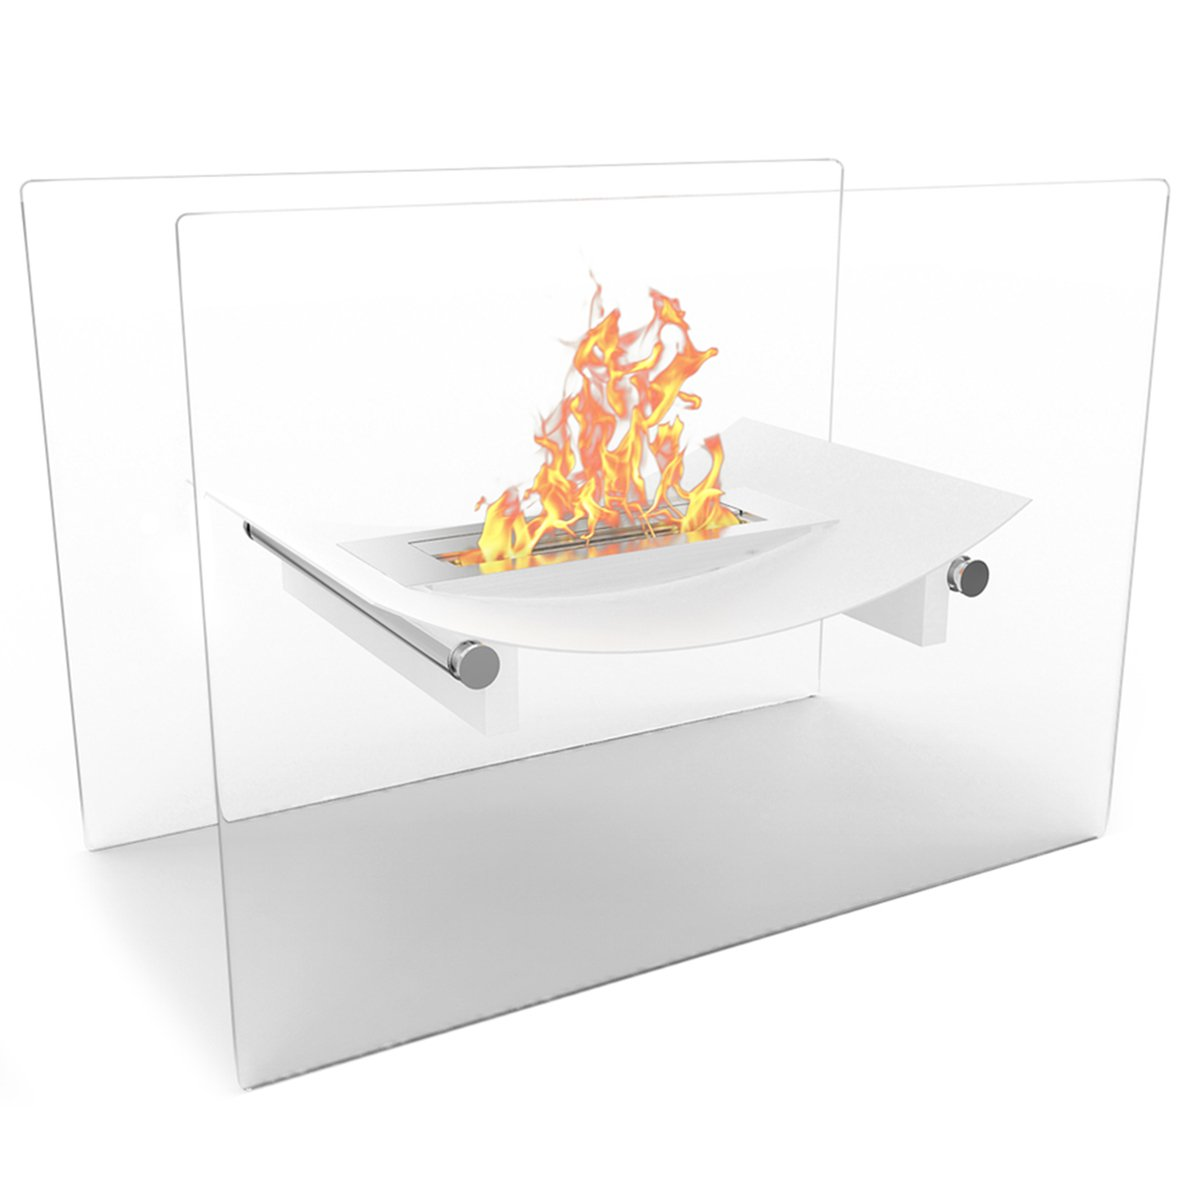 Regal Flame White Bow Ventless Free Standing Bio Ethanol Fireplace Can Be Used as a Indoor, Outdoor, Gas Log Inserts, Vent Free, Electric, Outdoor Fireplaces, Gel, Propane & Fire Pits. by Regal Flame